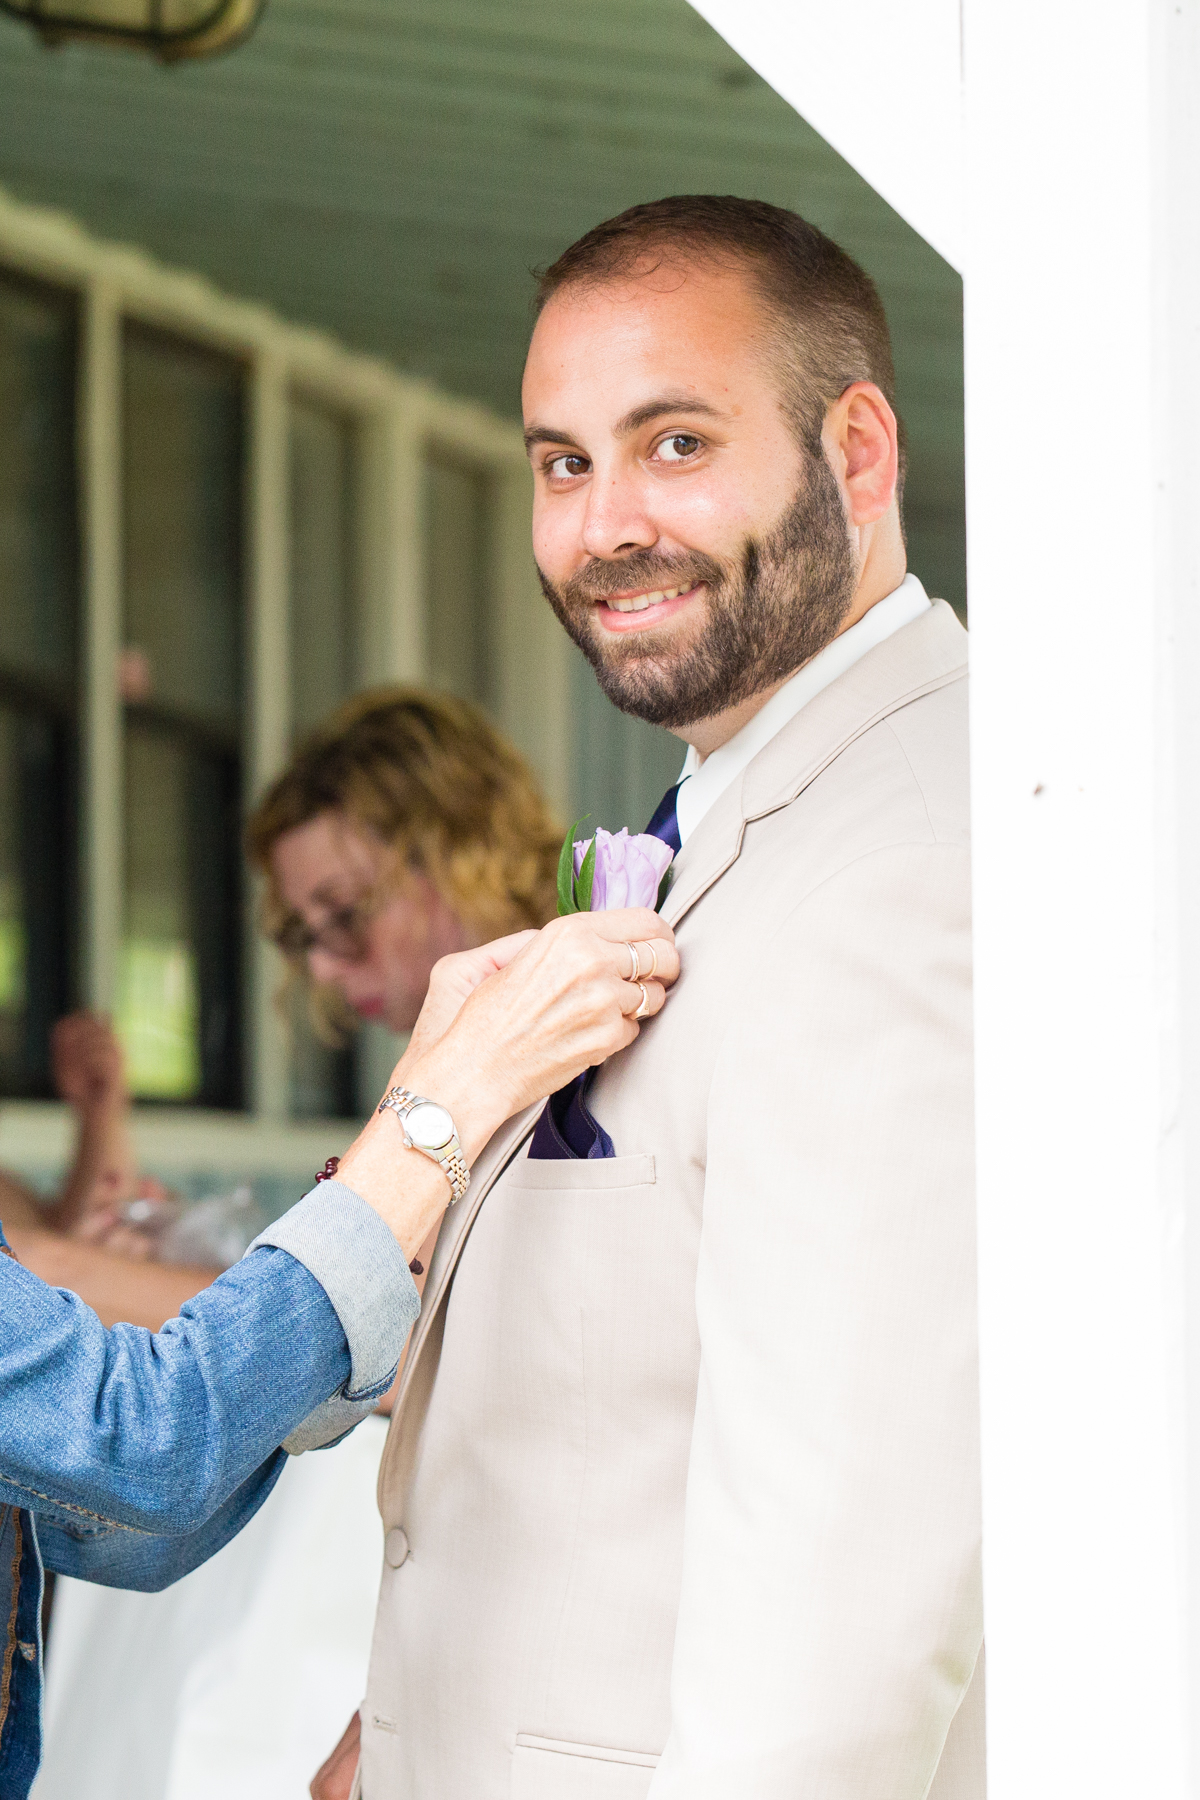 Joe still gamely got on his boutonniere